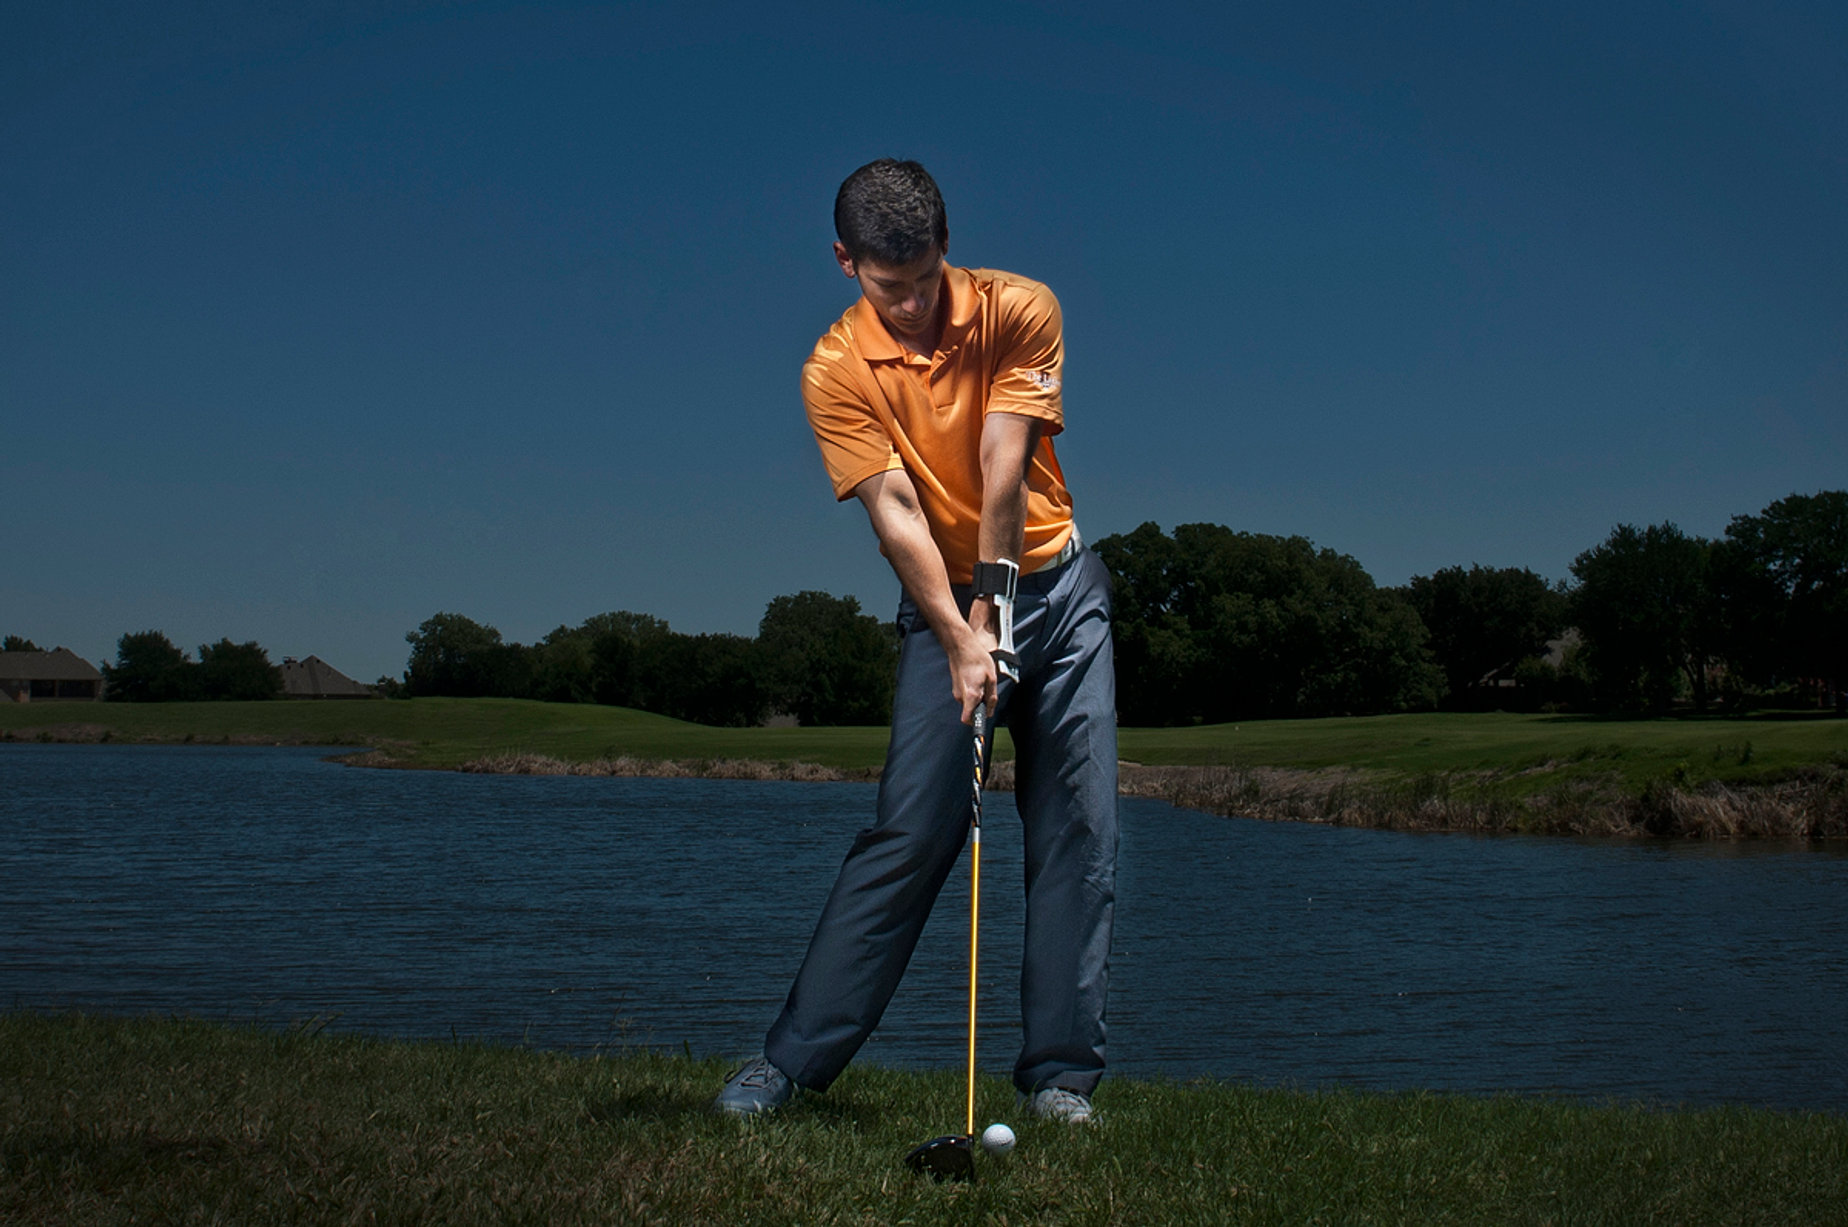 Golf Training Aid Swing Impact